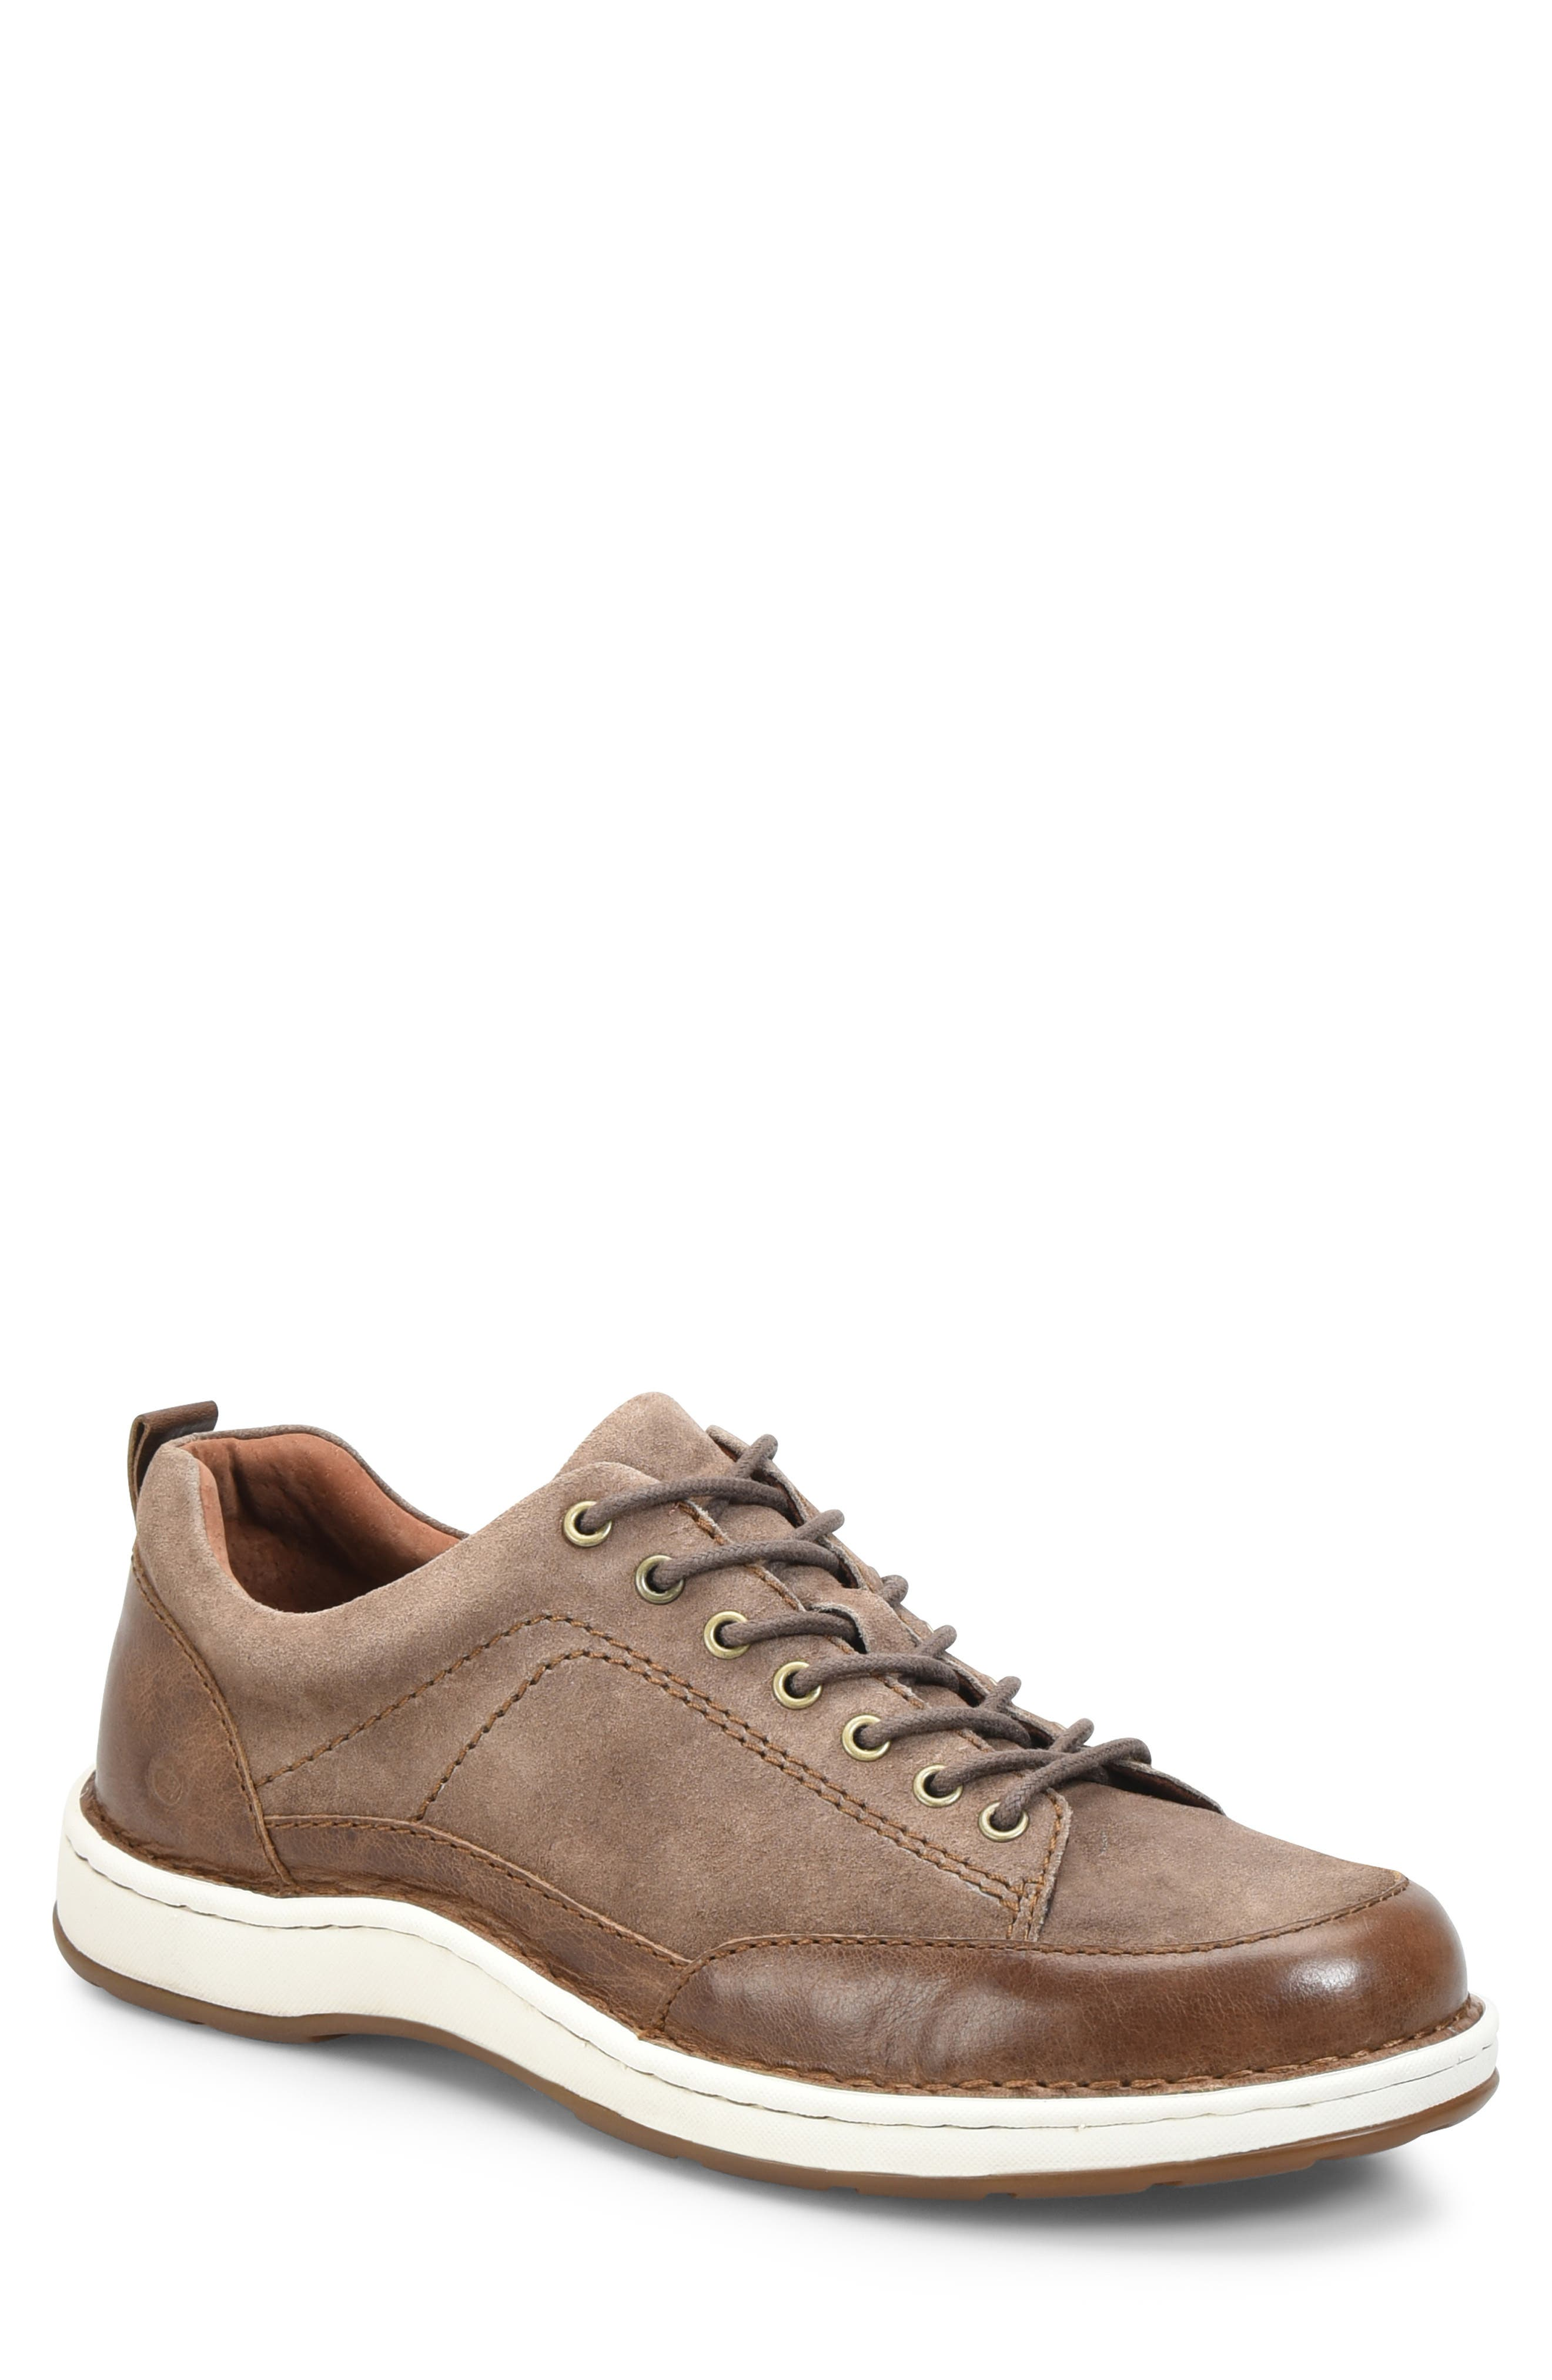 Kruger Moc Toe Sneaker,                         Main,                         color, TAUPE LEATHER